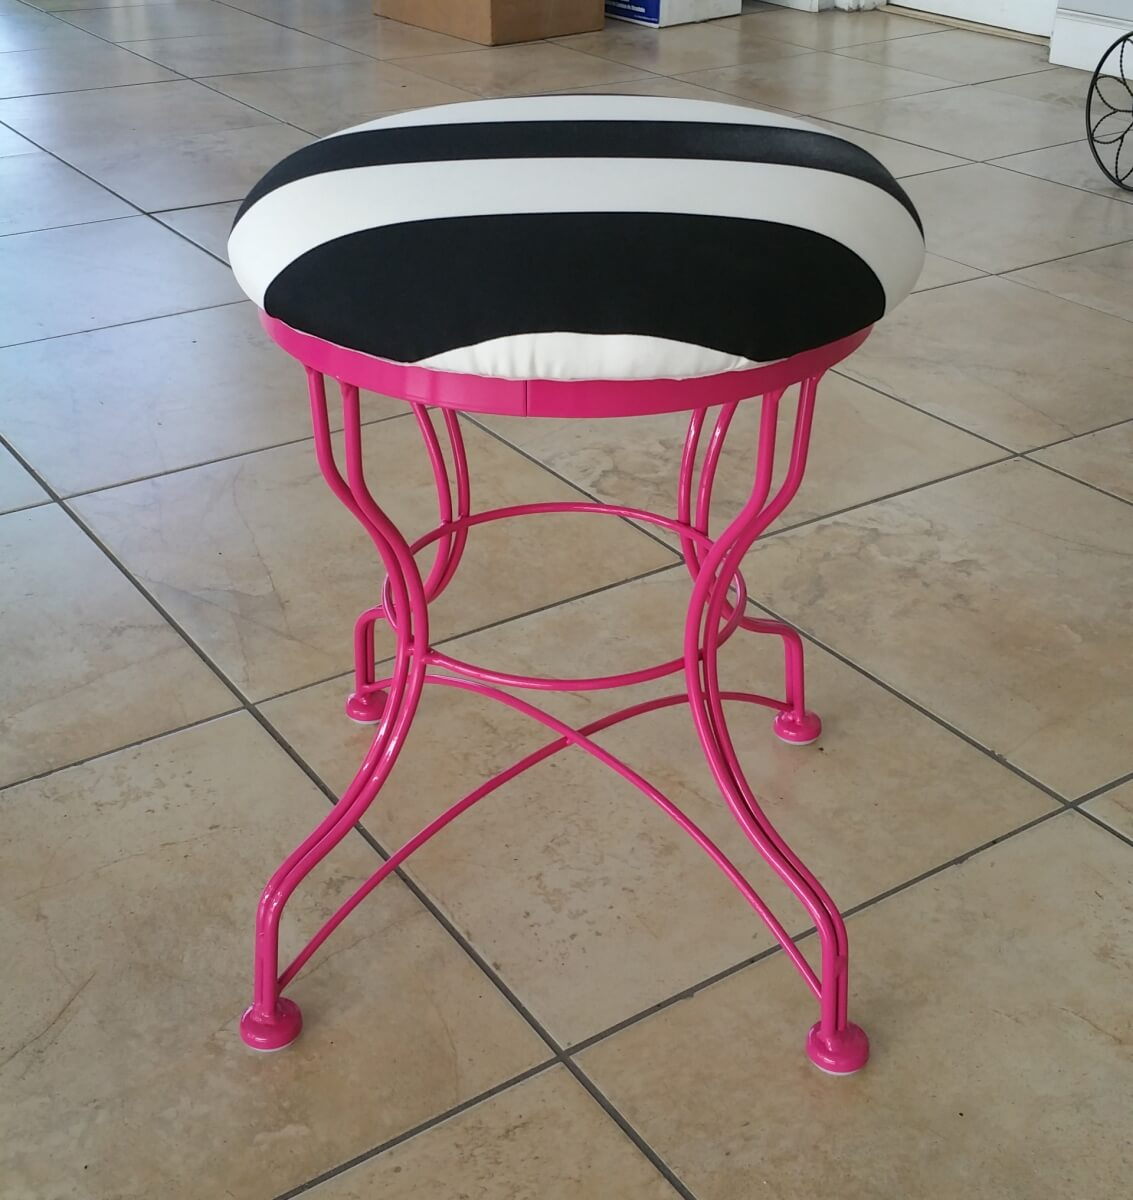 Pink legs and white and black stripped seat